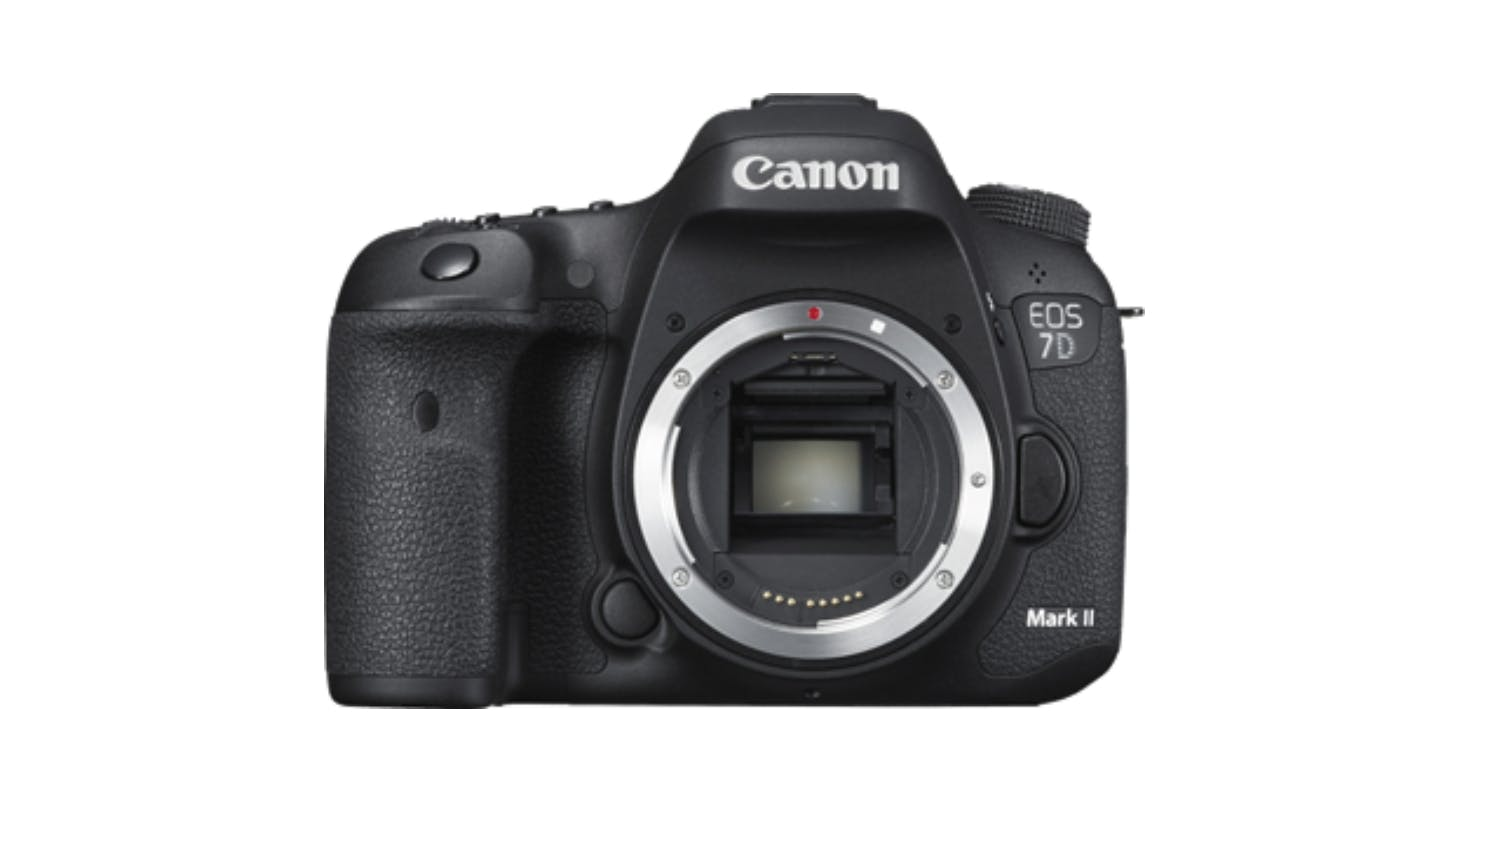 Canon EOS-7D MKII Digital SLR - Body Only | Harvey Norman Singapore